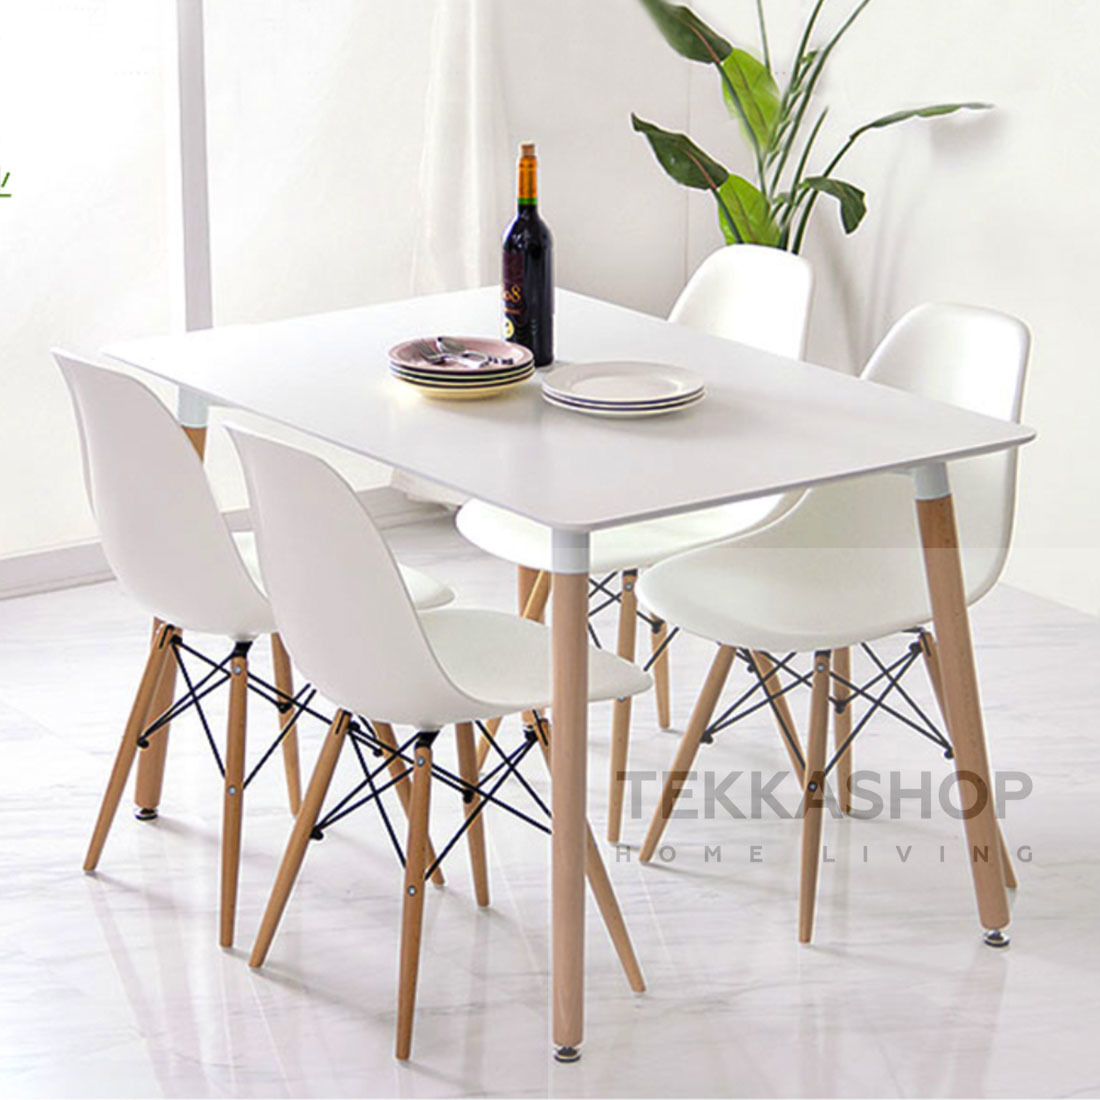 Tekka Sseds4 1 Eames Dining Table 120x80cm Set 4 Chairs